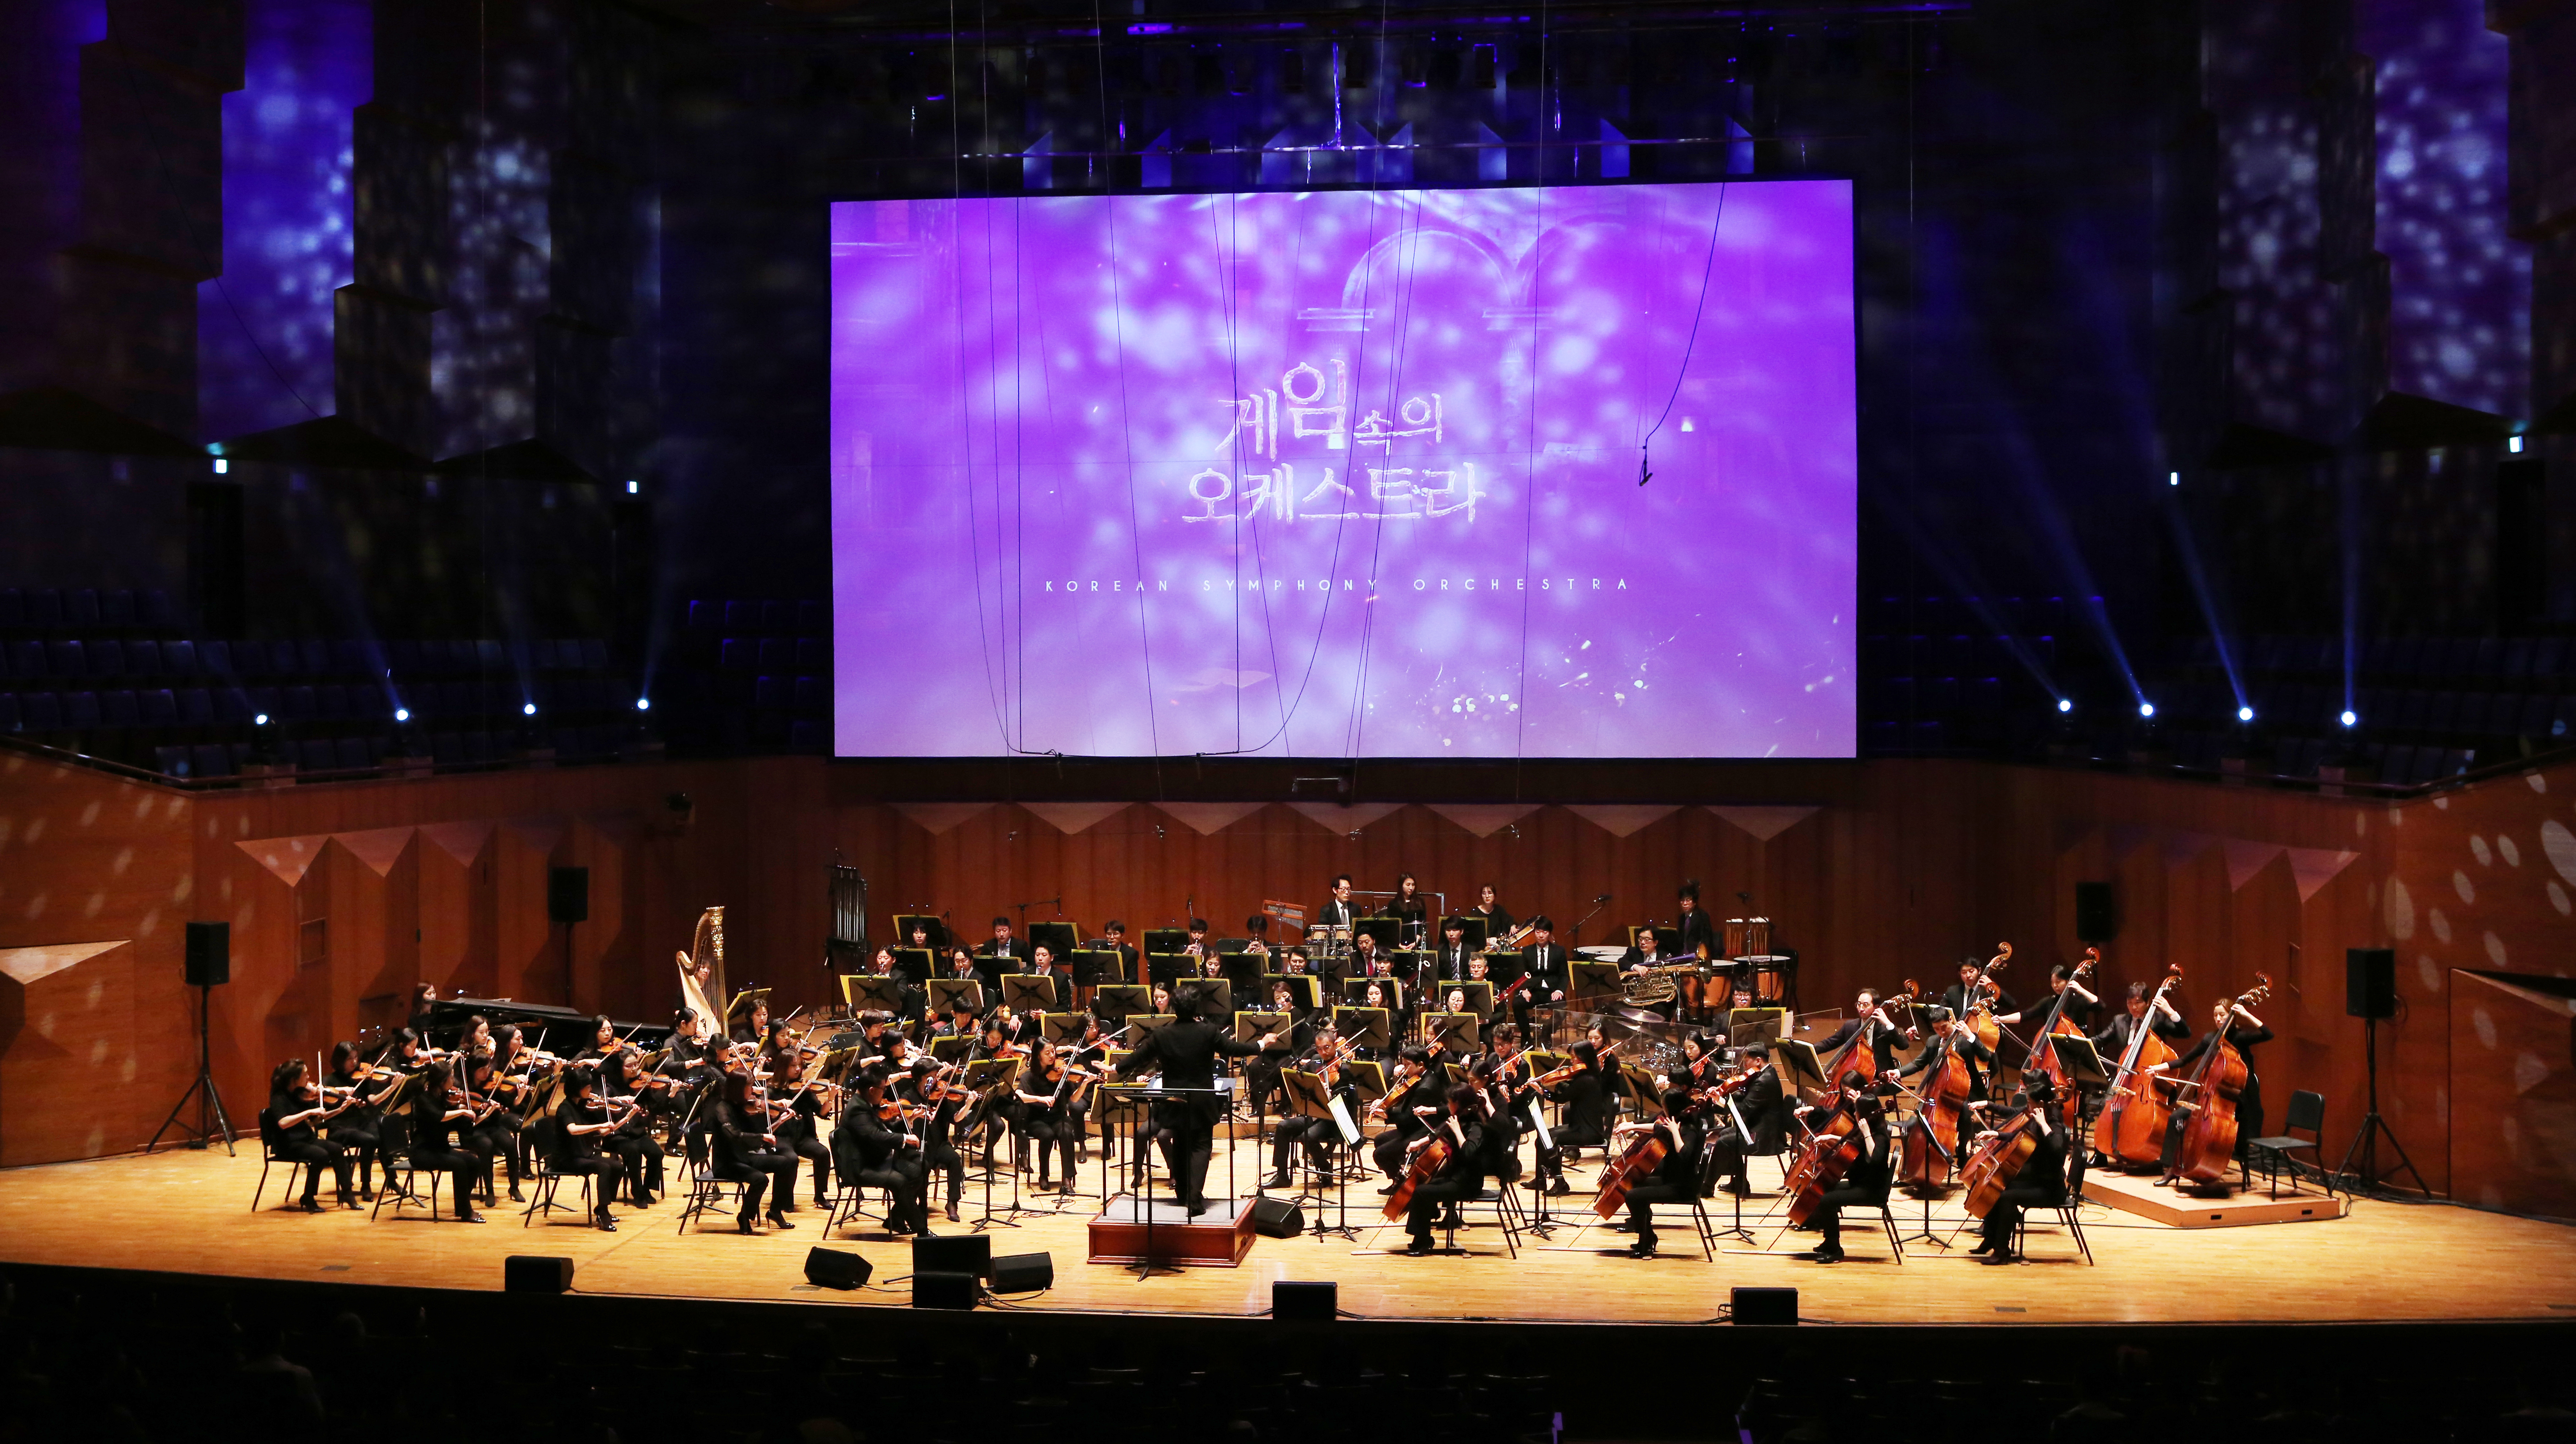 Game music in concert